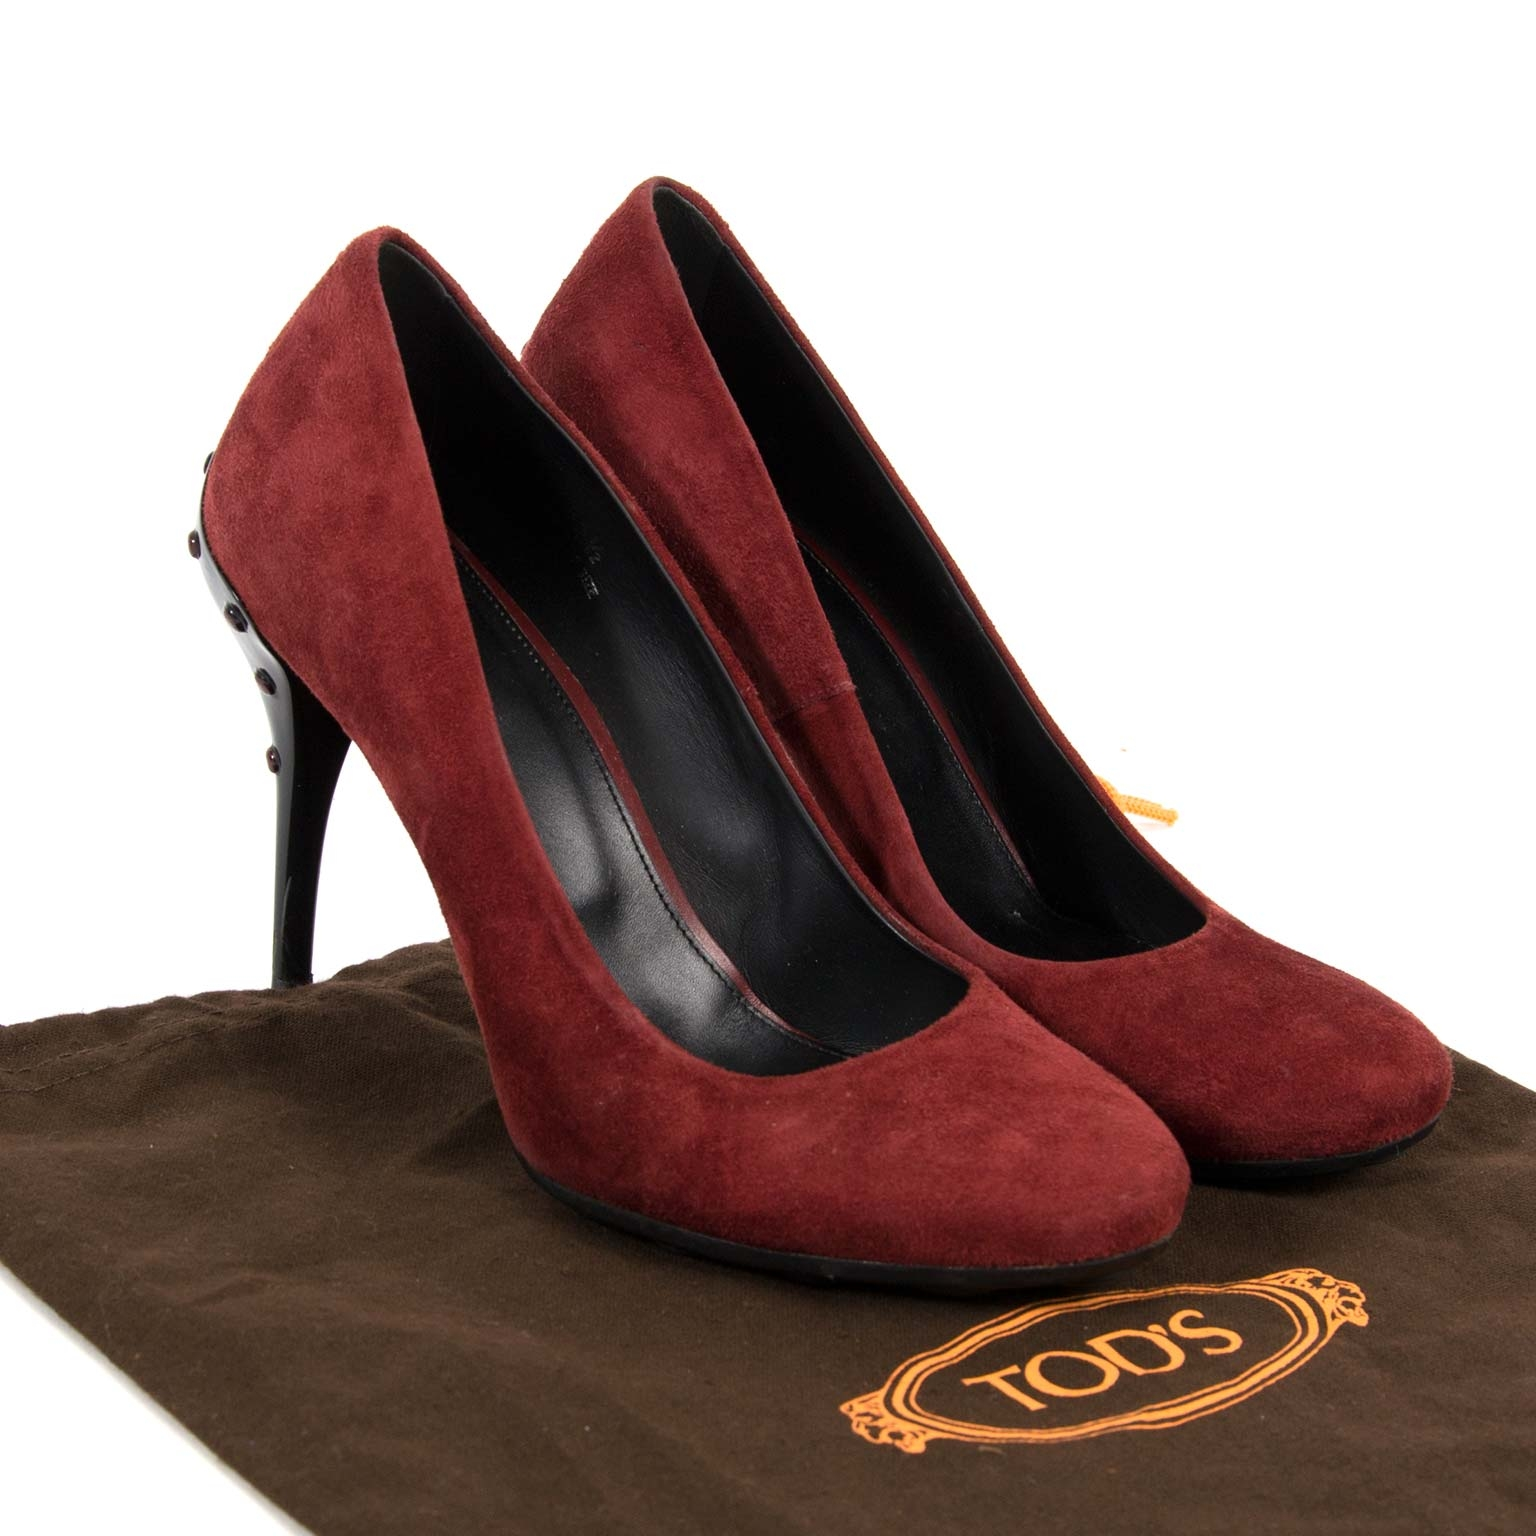 tods bordeaux suede pumps now for sale at labellov vintage fashion webshop belgium